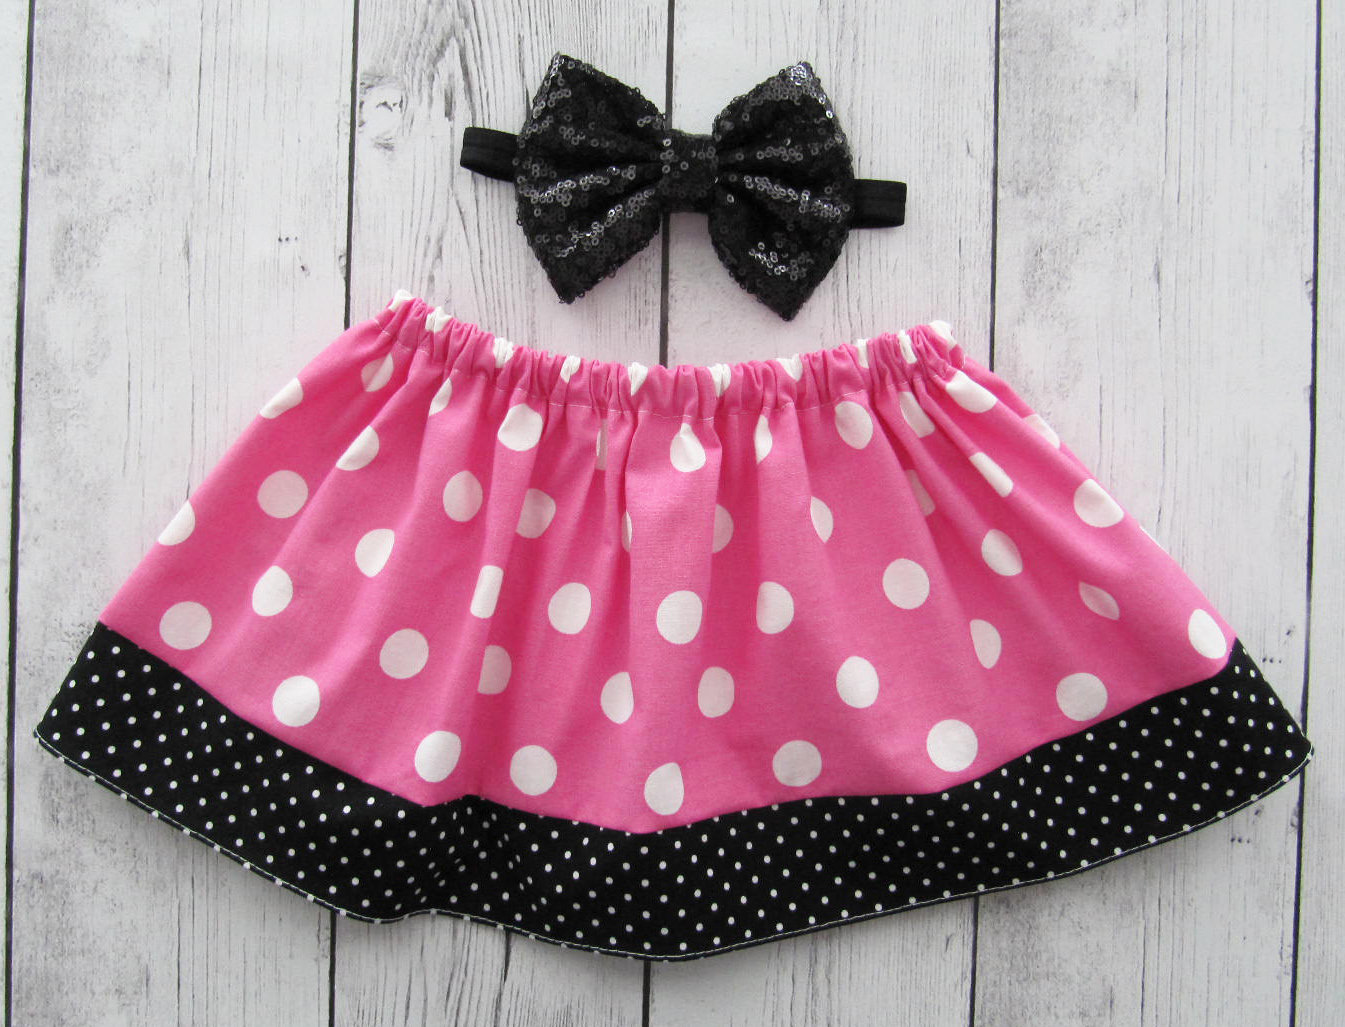 Pink Minnie Mouse Polka Dot Skirt for baby girl - pink black skirt, polka dot skirt, baby girl skirt, minnie halloween, baby girl skirts